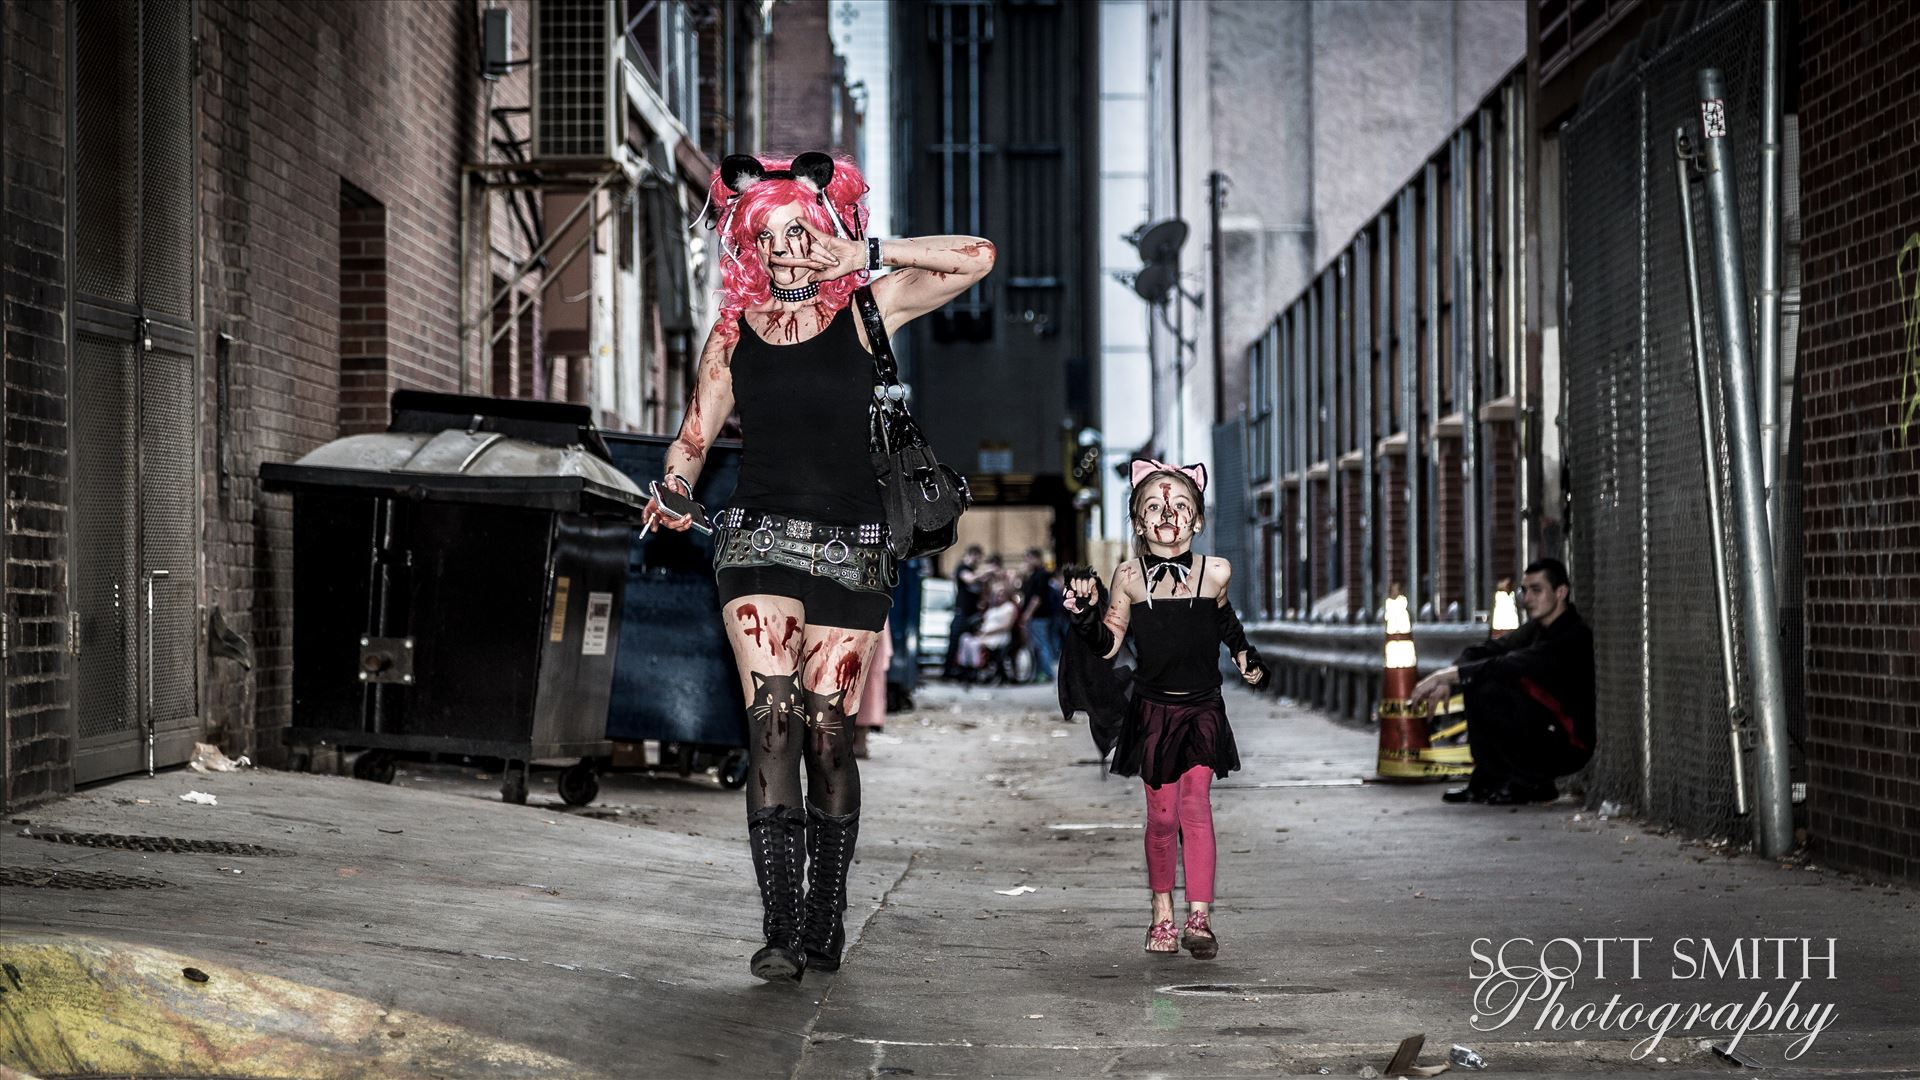 Denver Zombie Crawl 2015 18An adorable mother and daughter walking through an alley during Denver's 2015 Zombie Crawl.